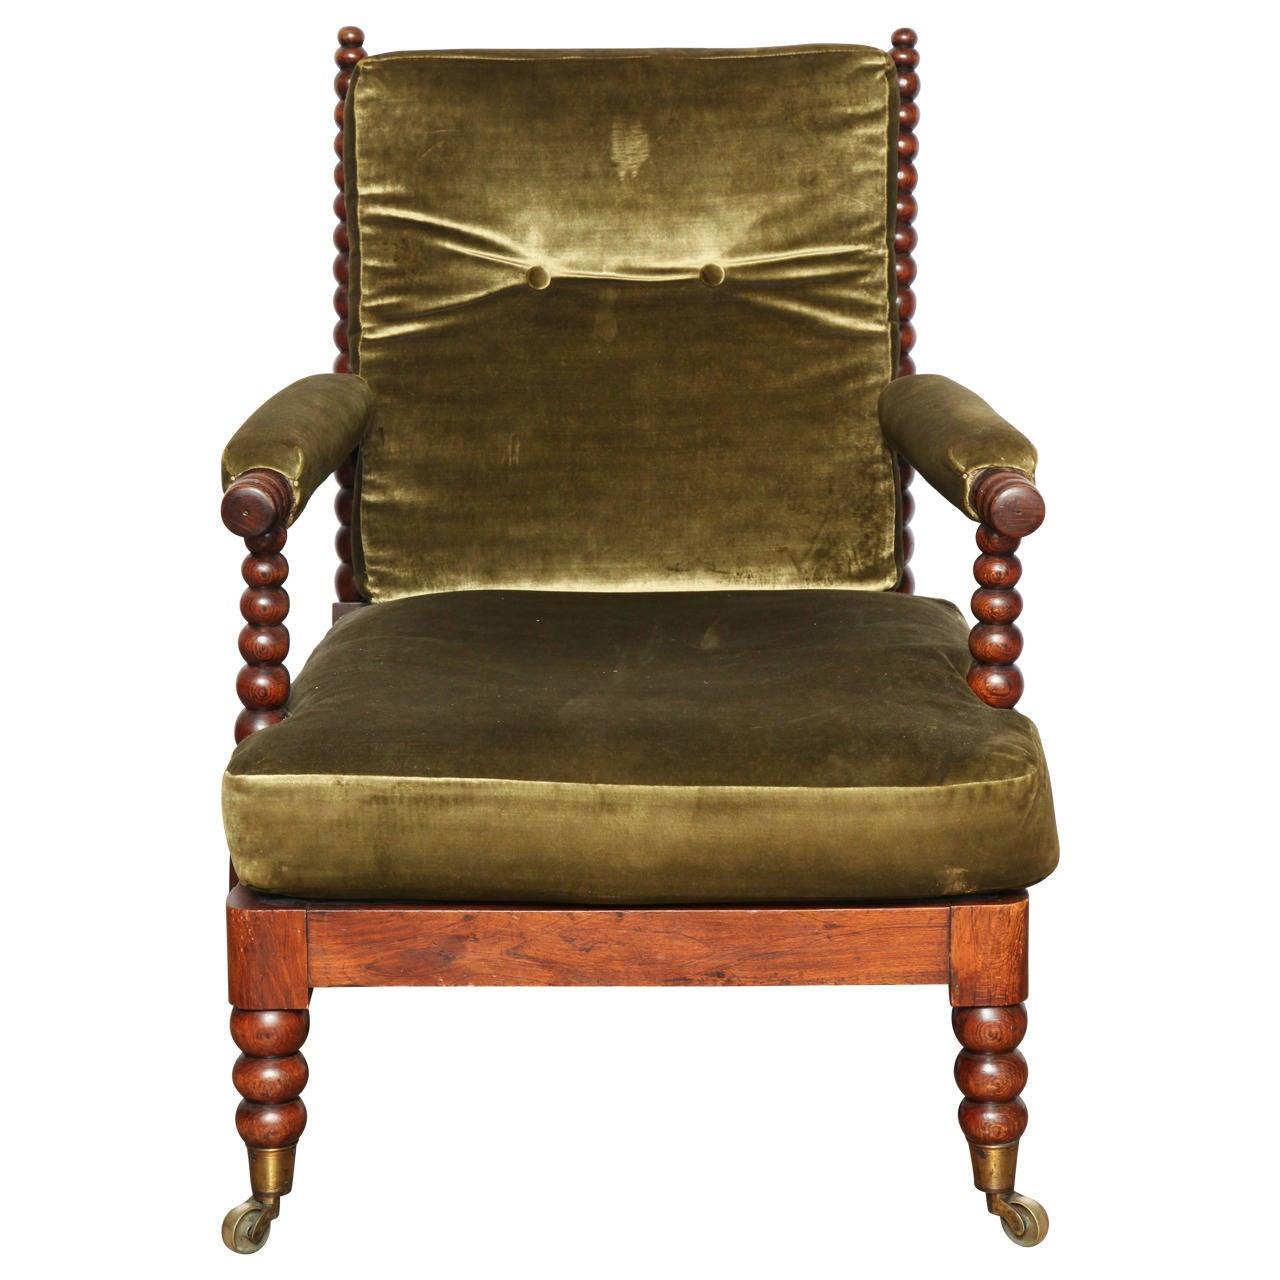 this 19th century bobbin chair is no longer available